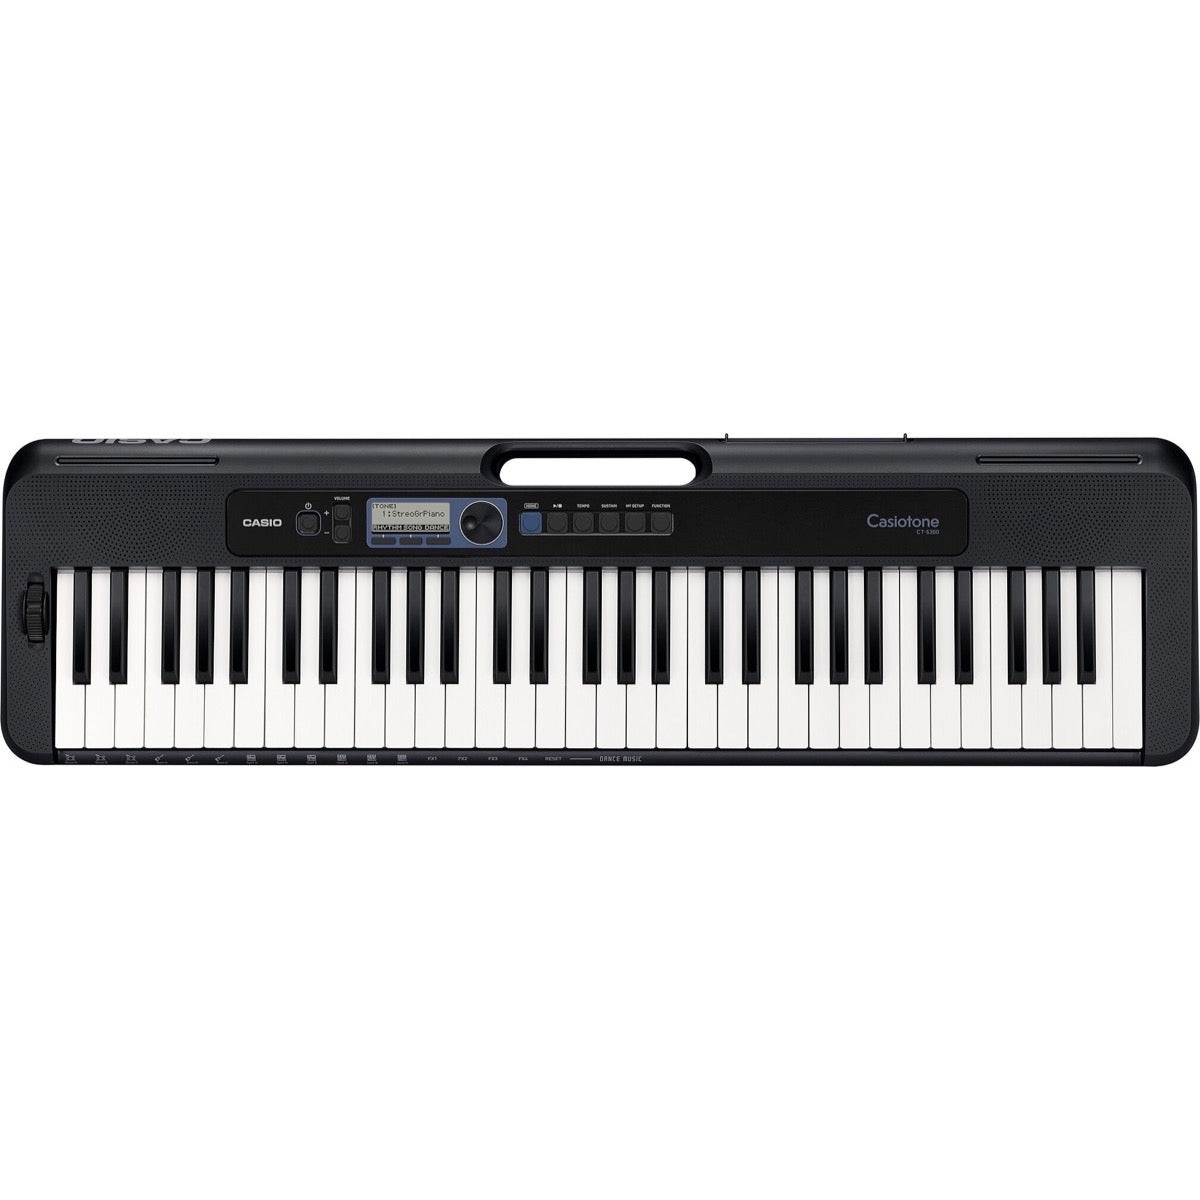 Casio CT-S300 Casiotone Portable Electronic Keyboard